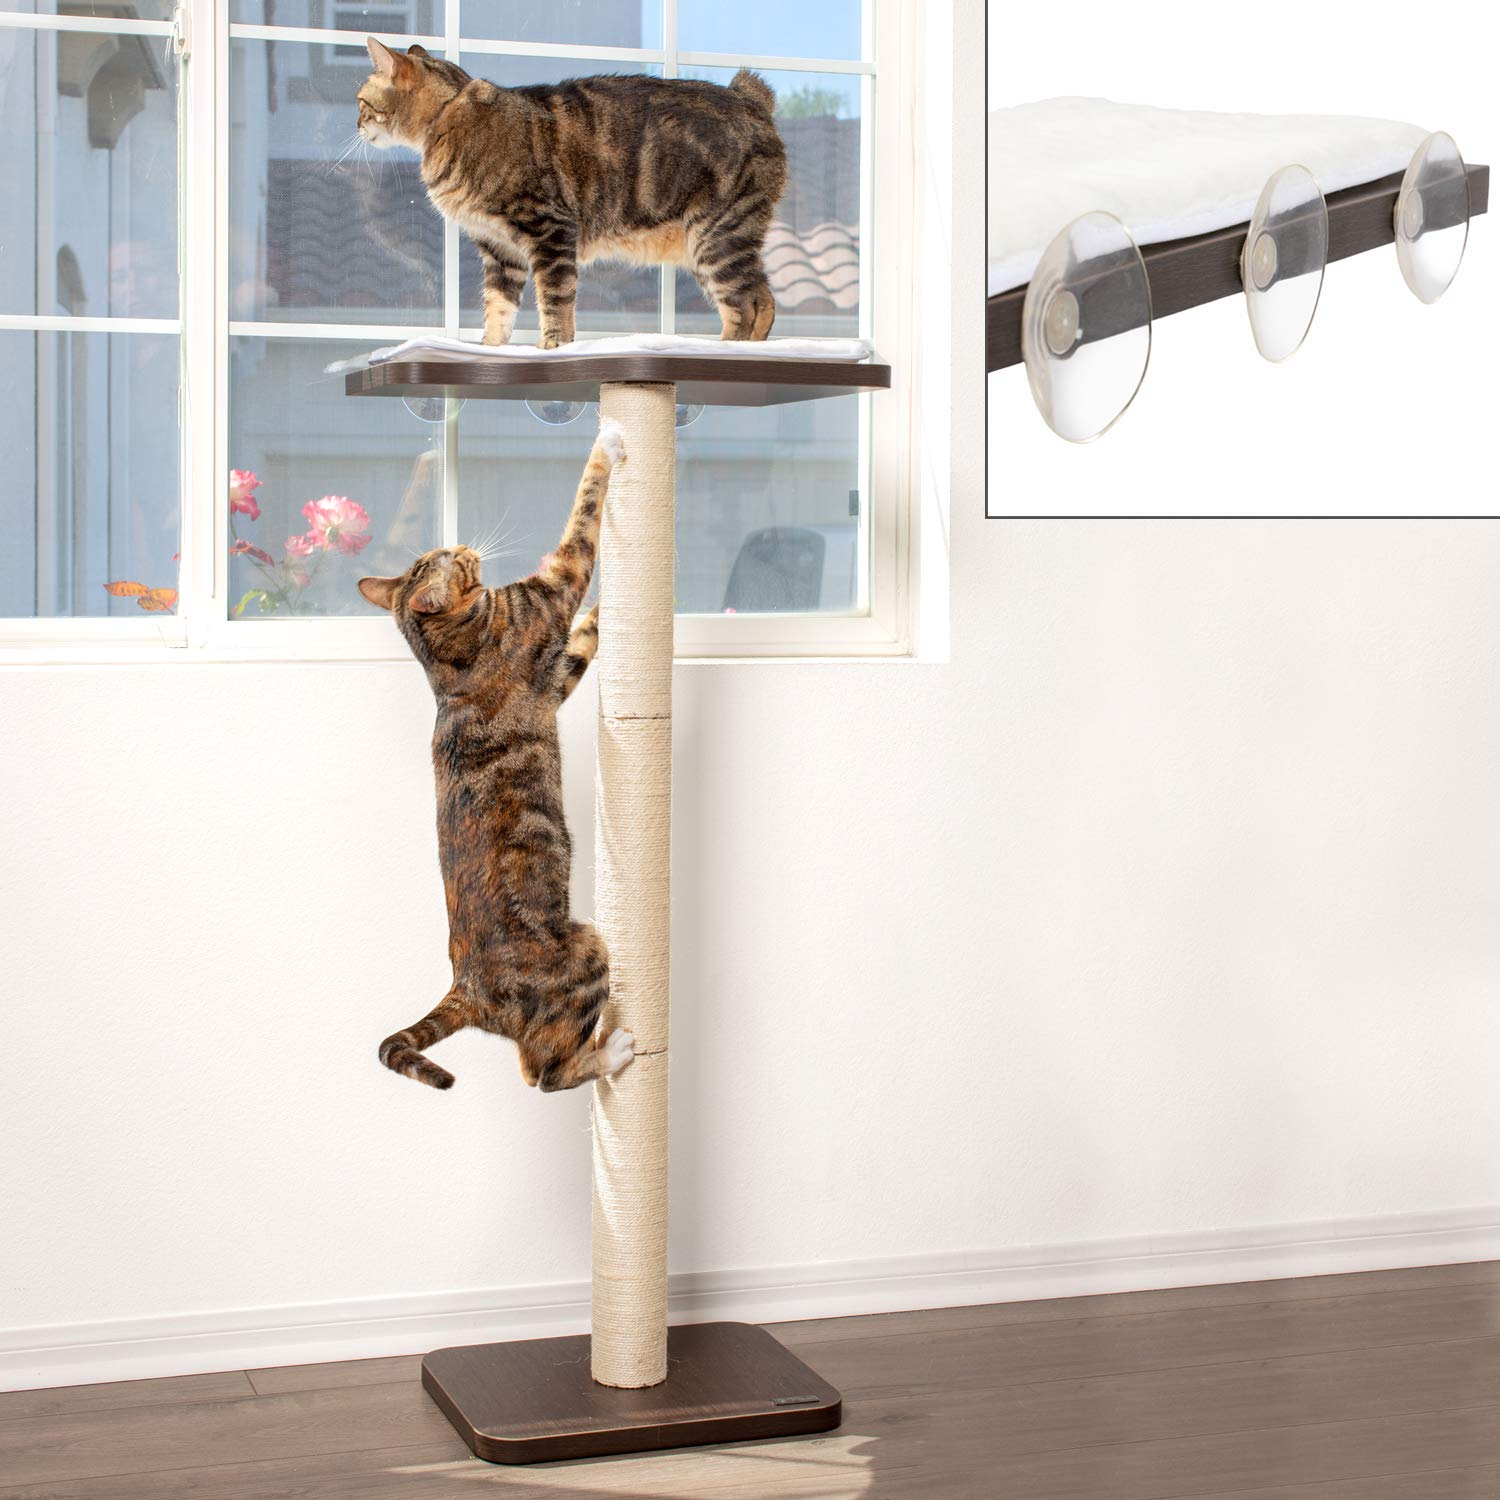 PetFusion Ultimate CAT Window Climbing Perch (45'' Tall Tree) | Sisal Scratching Posts, Modern Window Mounted Cat Furniture | Easy to Assemble | 1 Year Warranty for Manufacturer Defects by PetFusion